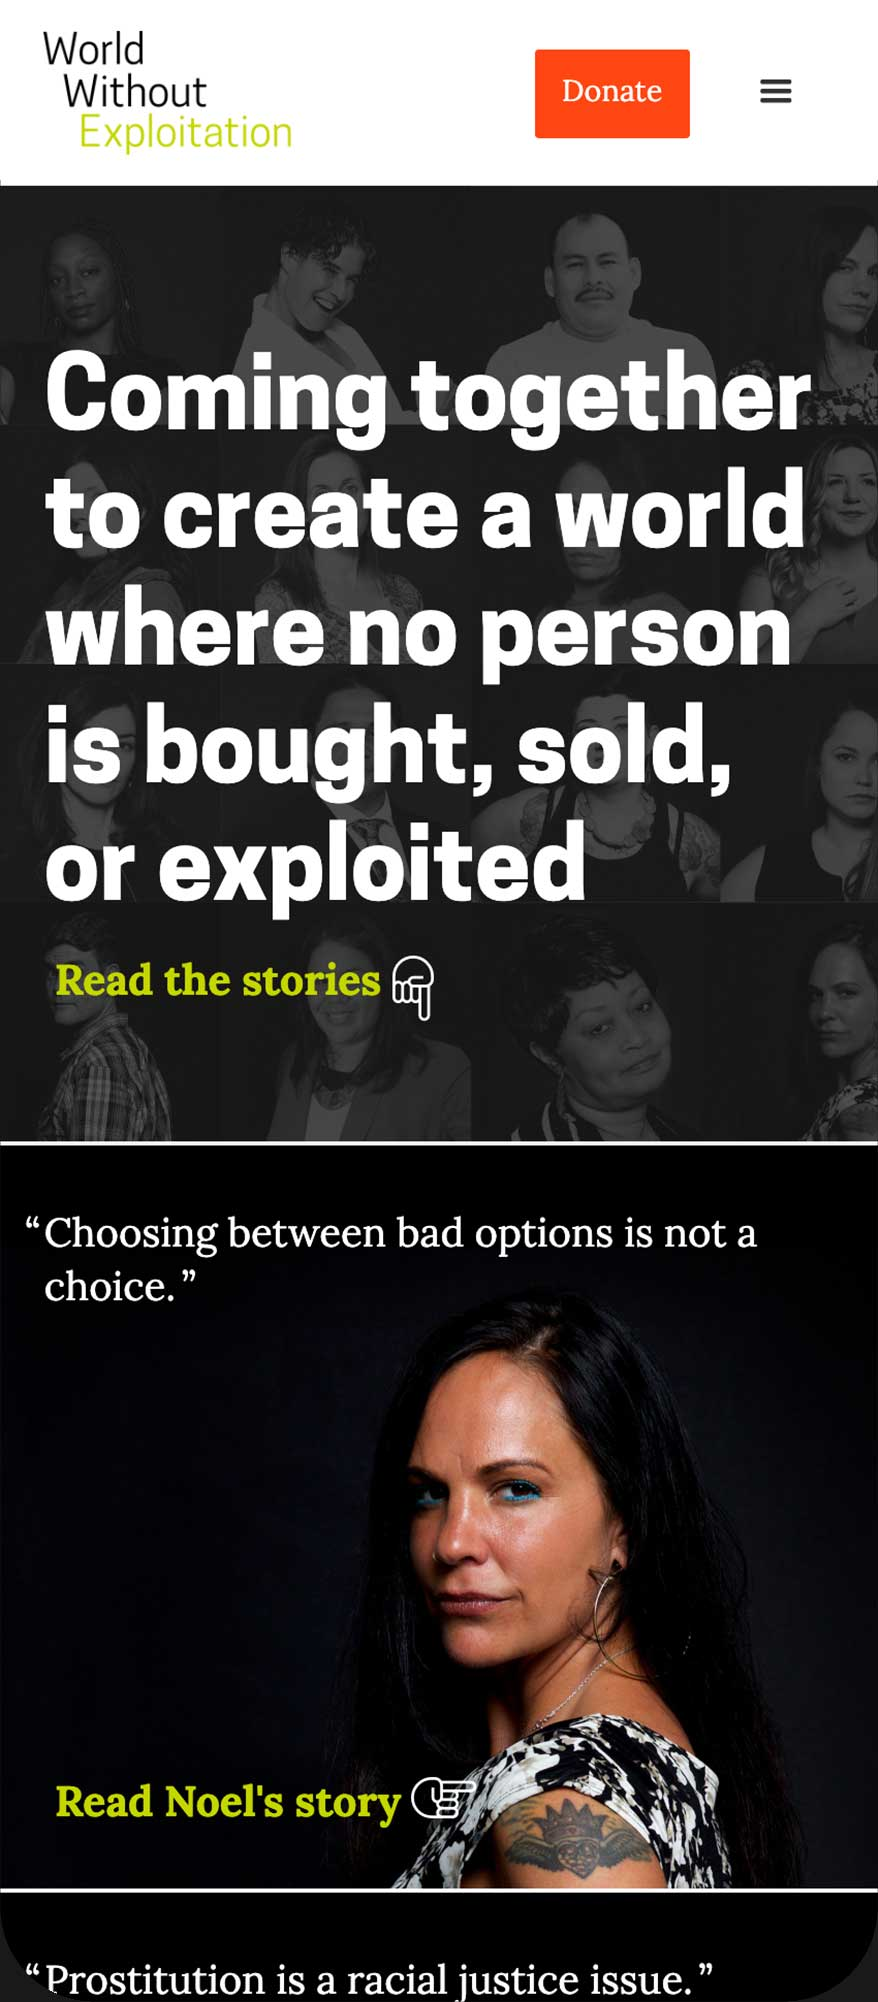 Mobile version of the homepage, showing the tagline: Coming together to create a world where no person is bought, sold, or exploited.